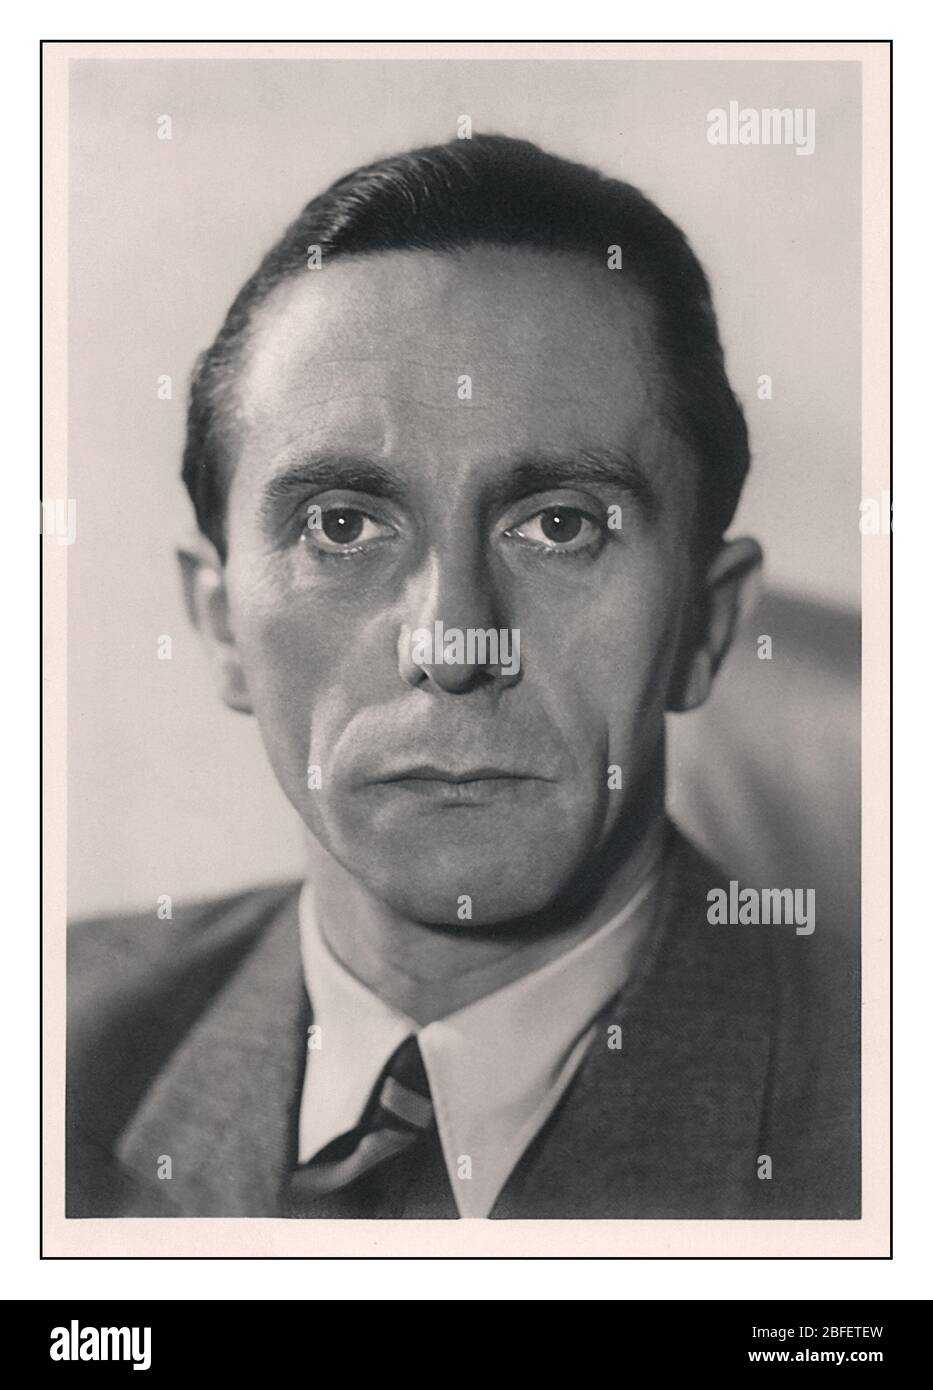 1930s Portrait of Paul Joseph Goebbels a German Nazi politician and Reich Minister of Propaganda of Nazi Germany from 1933 to 1945. He was one of Adolf Hitler's closest and most devoted associates, and was known for his skills in public speaking and his deeply virulent antisemitism, which was evident in his publicly voiced views. Committed suicide in 1945 with Allies on final assault to central Berlin Germany Stock Photo